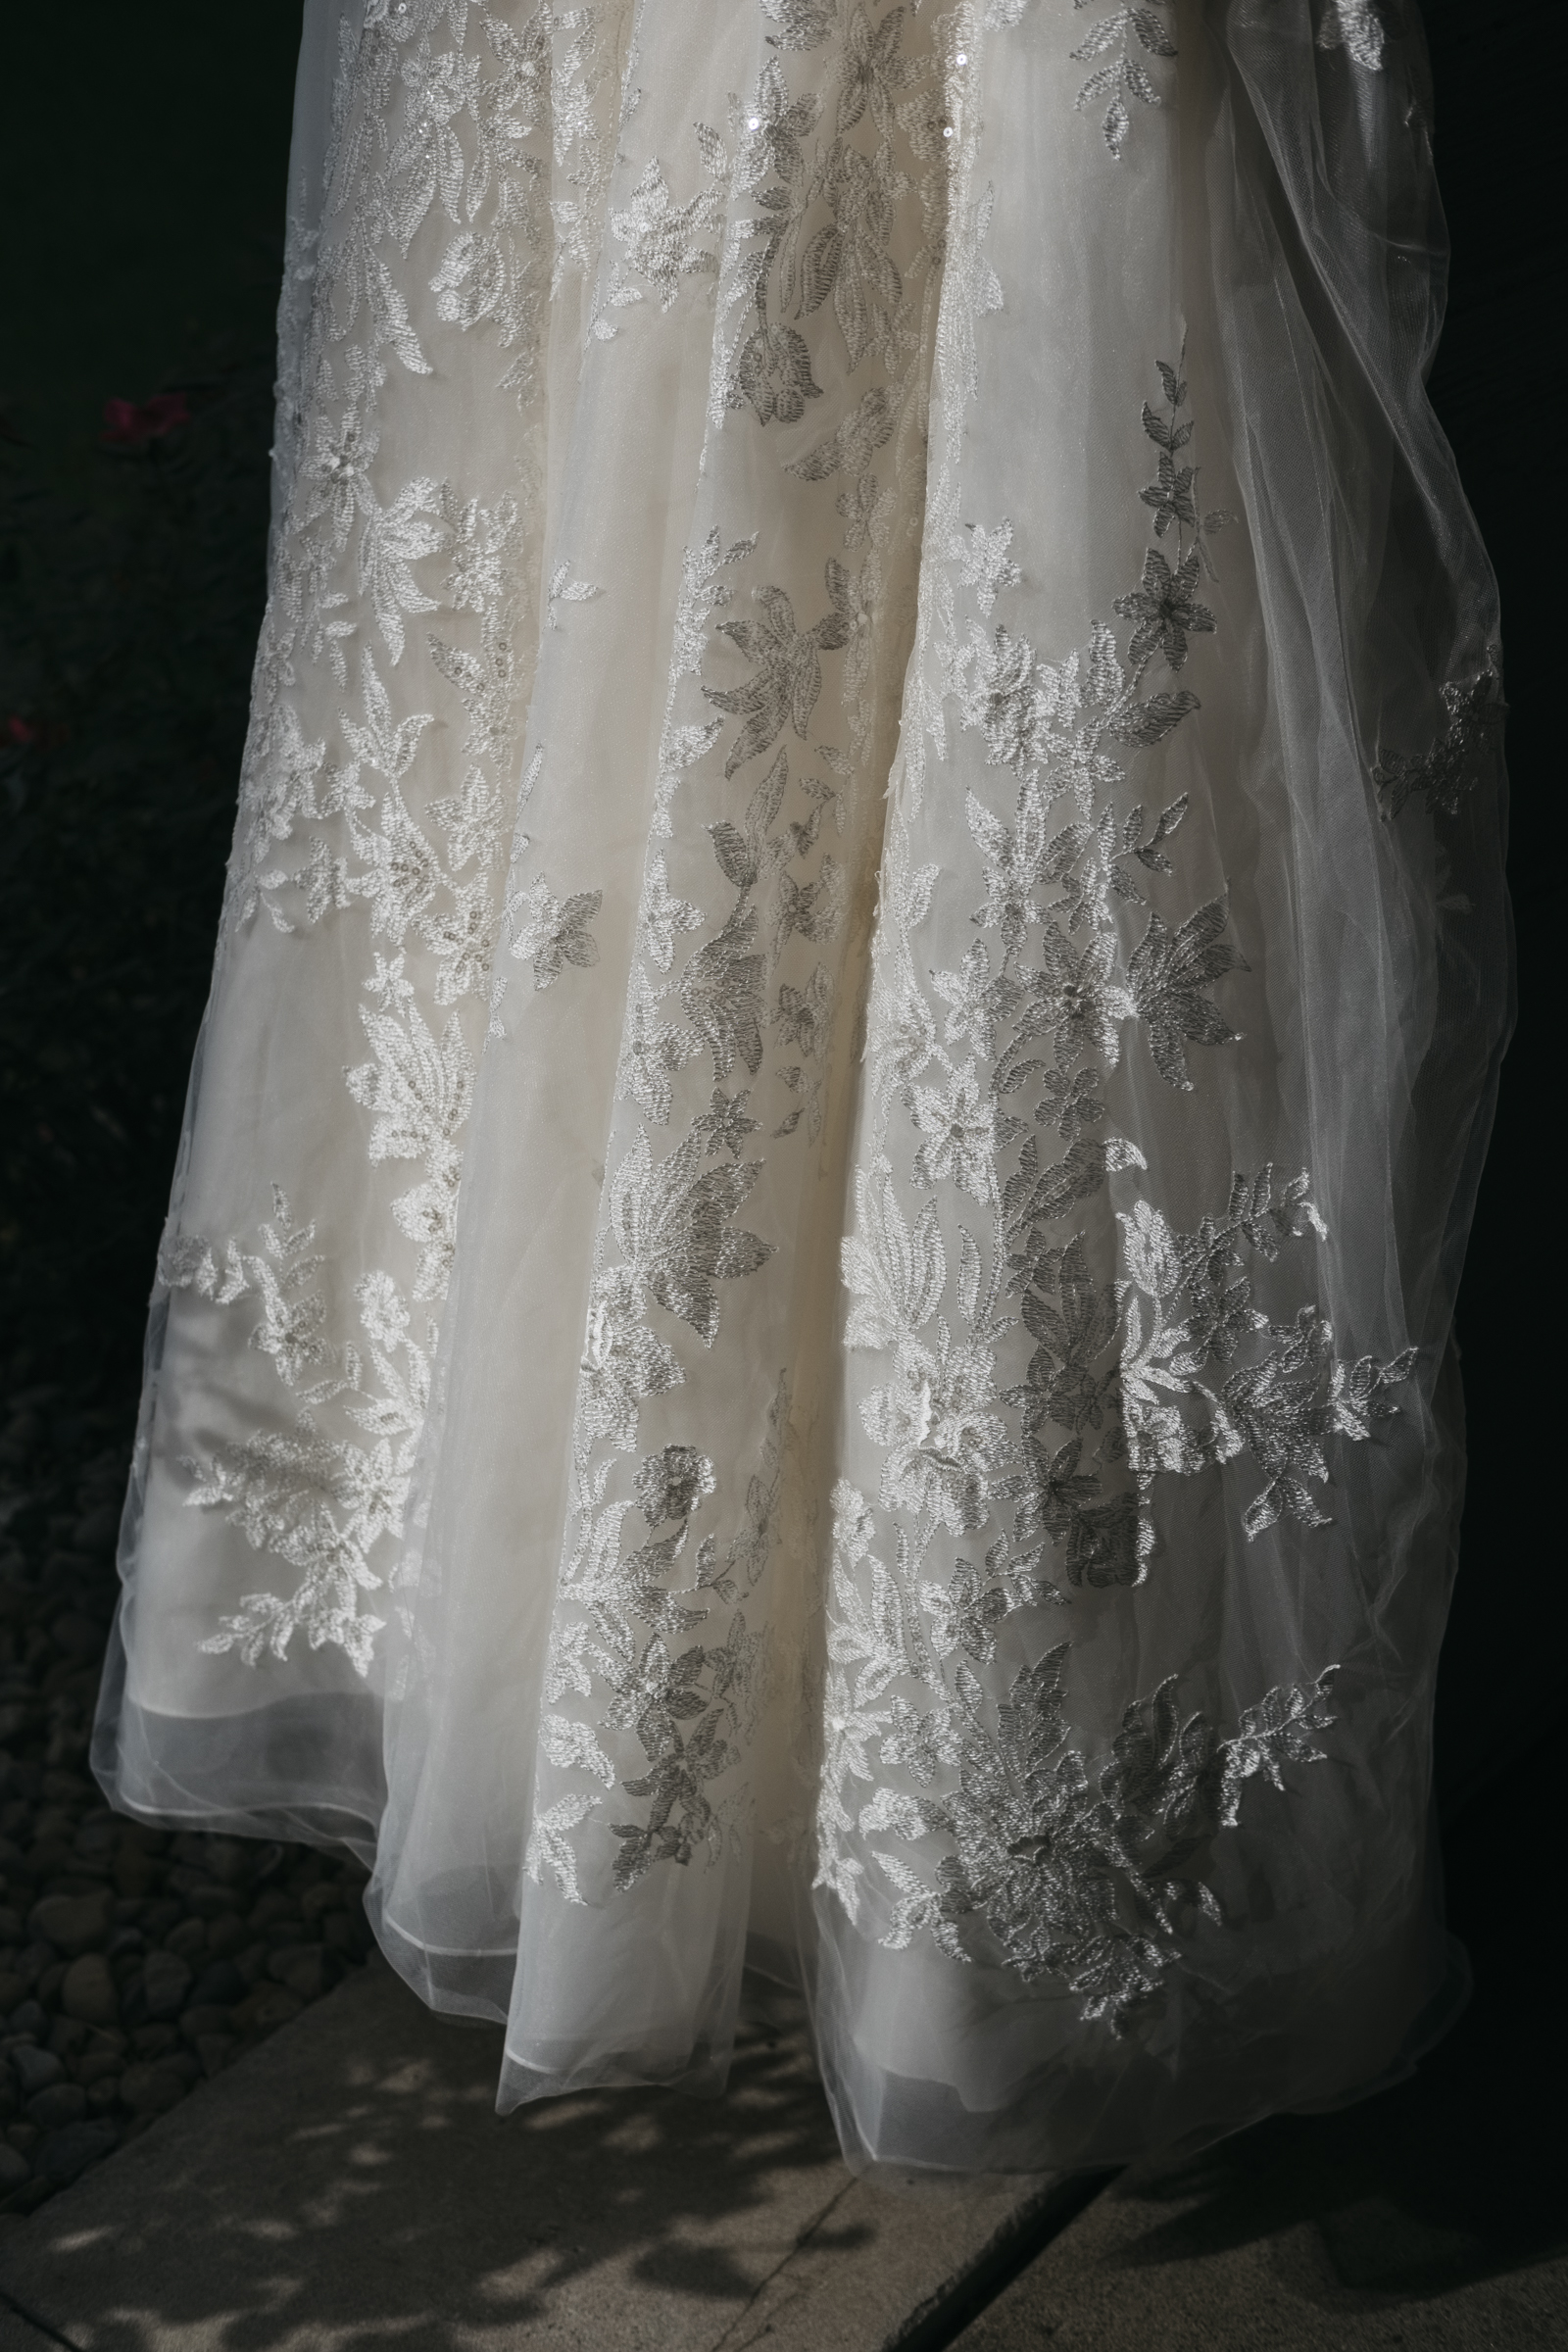 The bride's dress details with lace and floral for Fremont, Ohio wedding ceremony